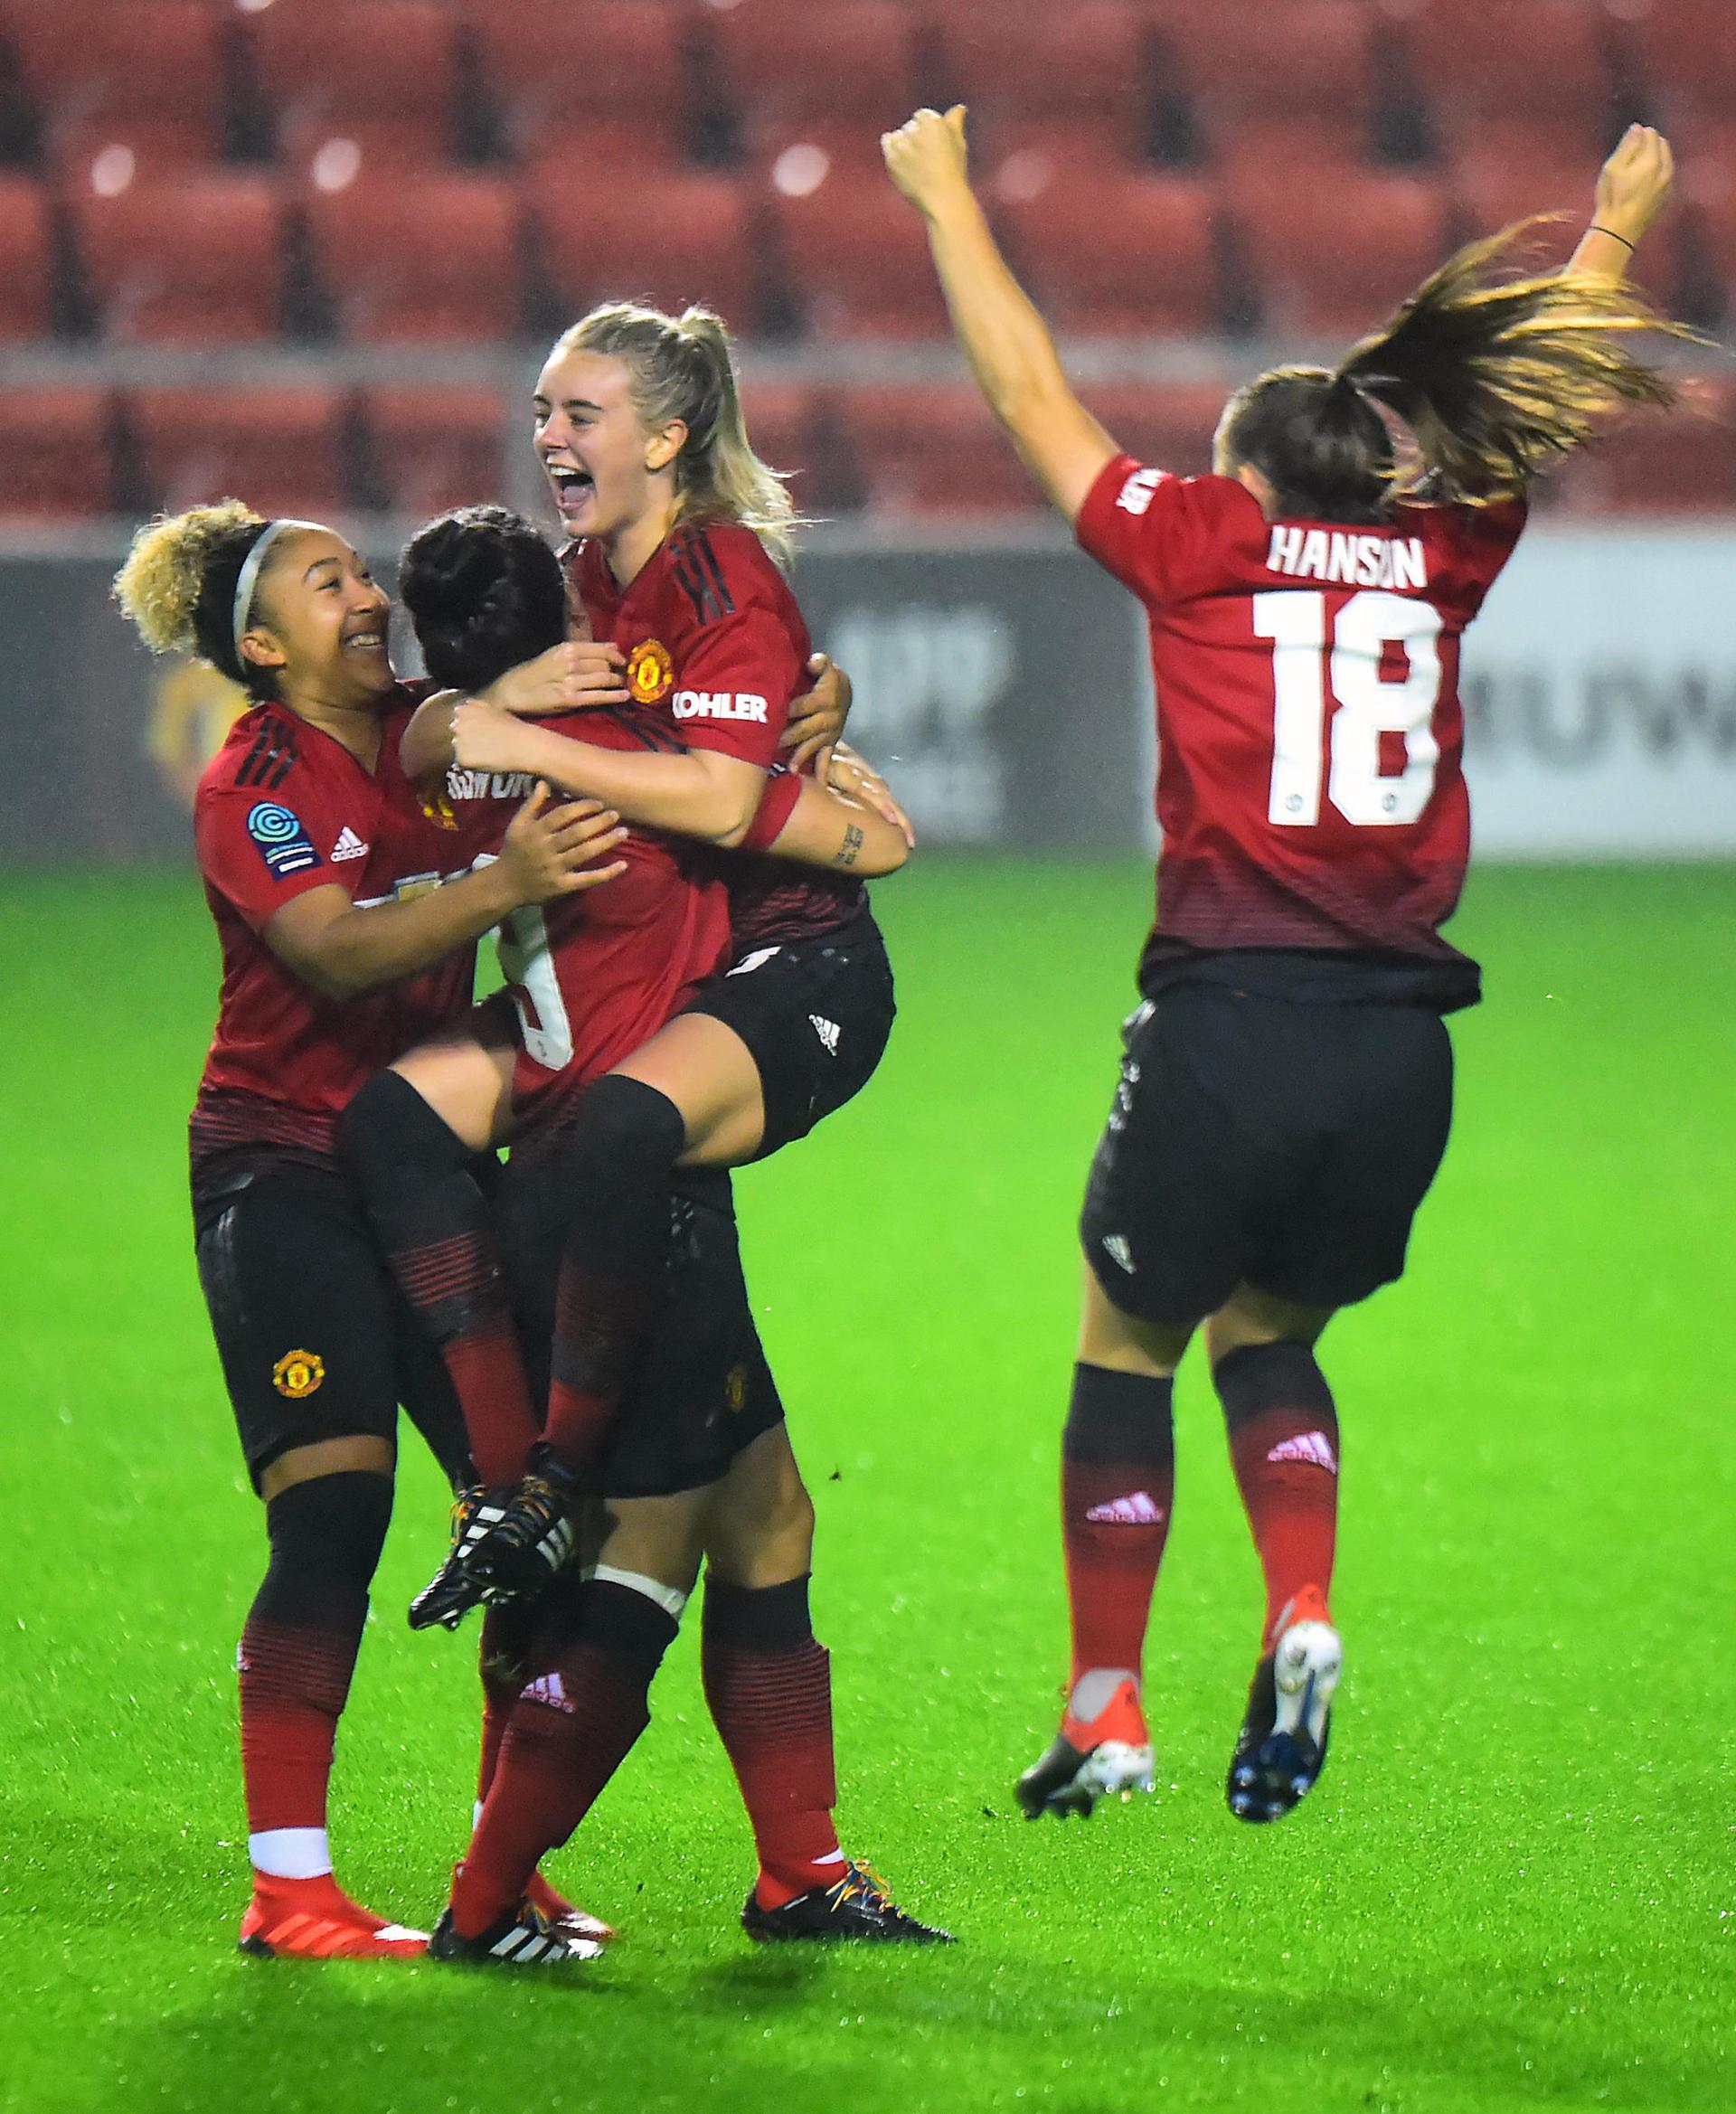 Mollie Green celebrates after scoring for Manchester United Women against Durham.